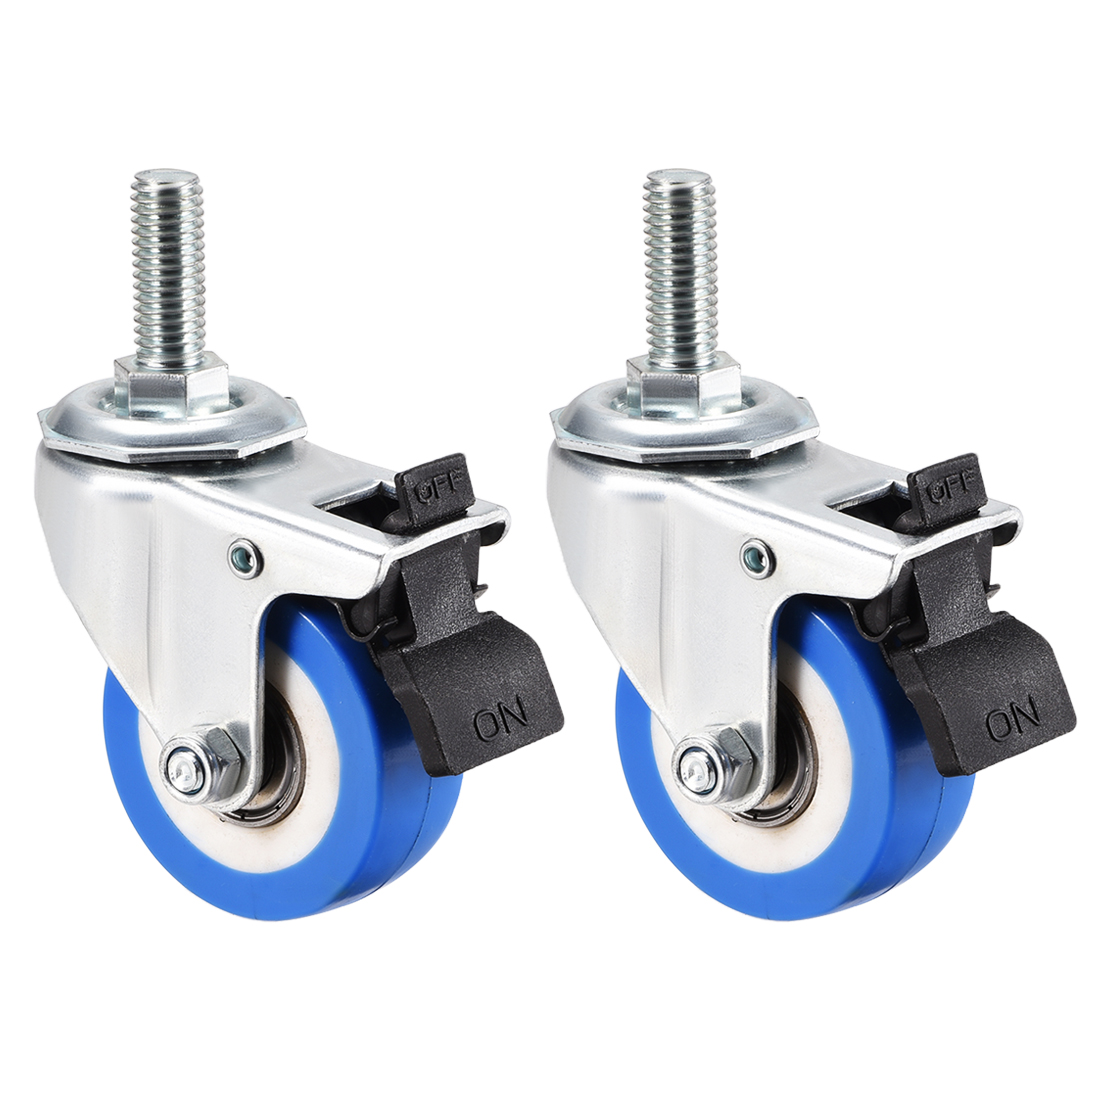 Swivel Caster Wheels PU Caster 2 Inch Wheel M10 x 25mm Thread with Brake , 2pcs